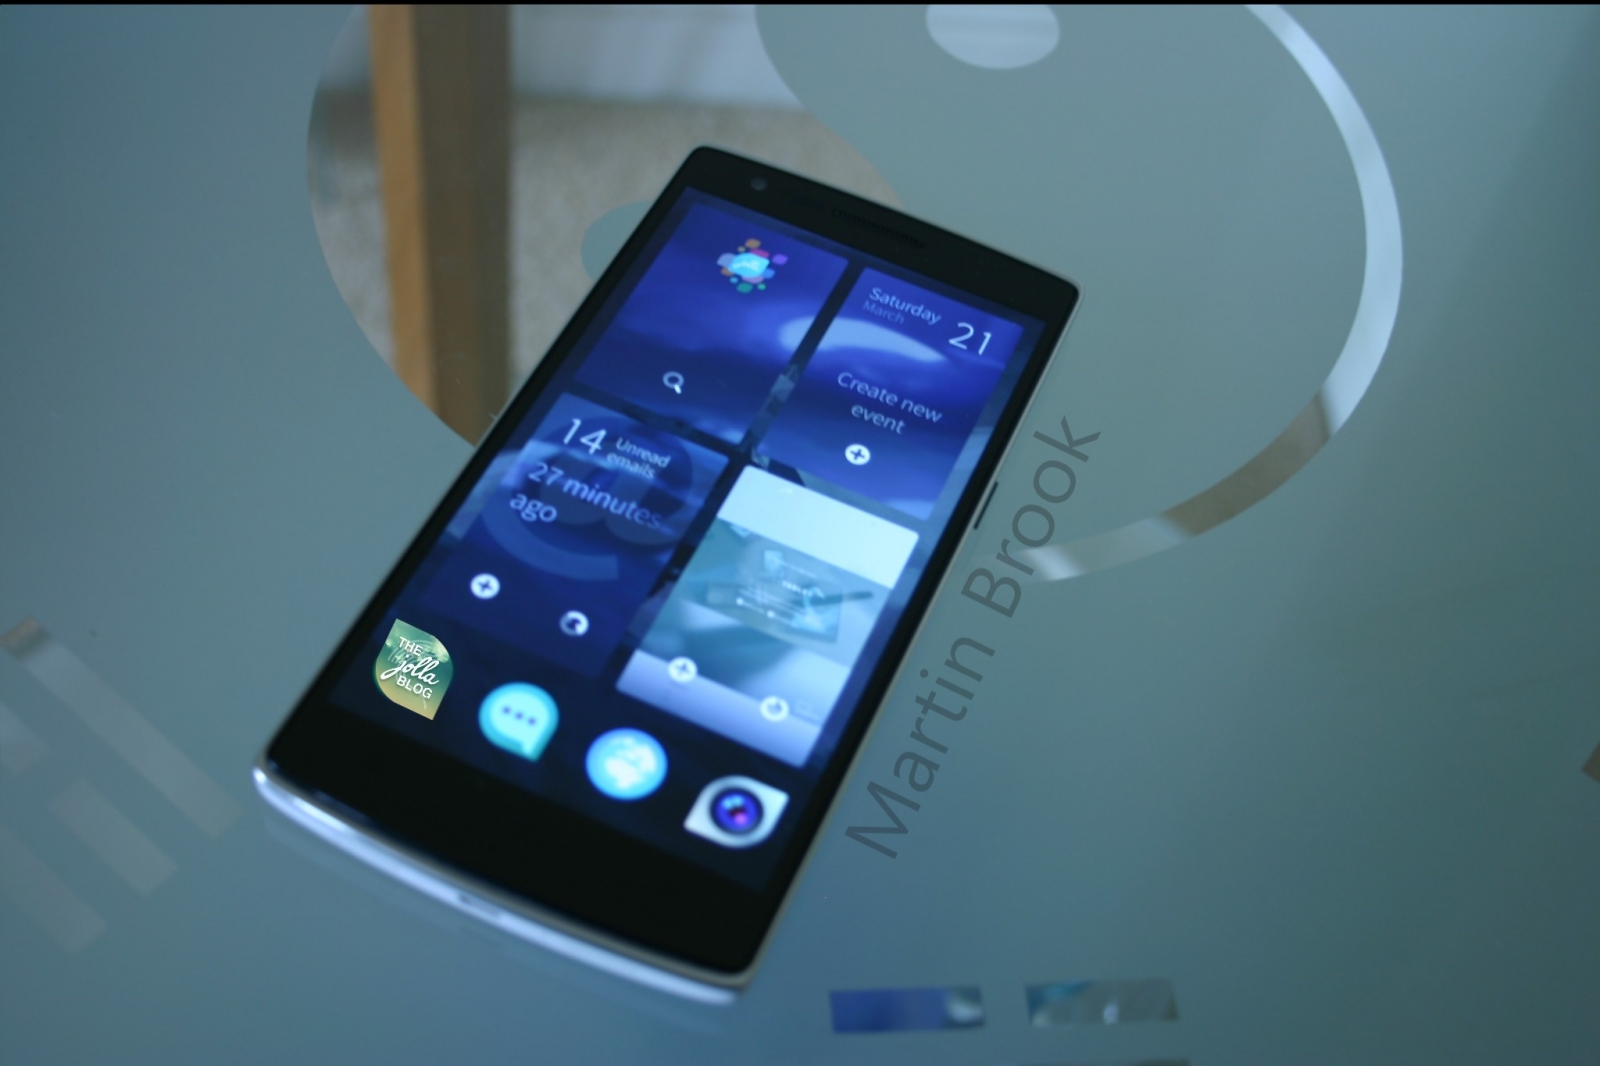 OnePlus One gets Sailfish OS